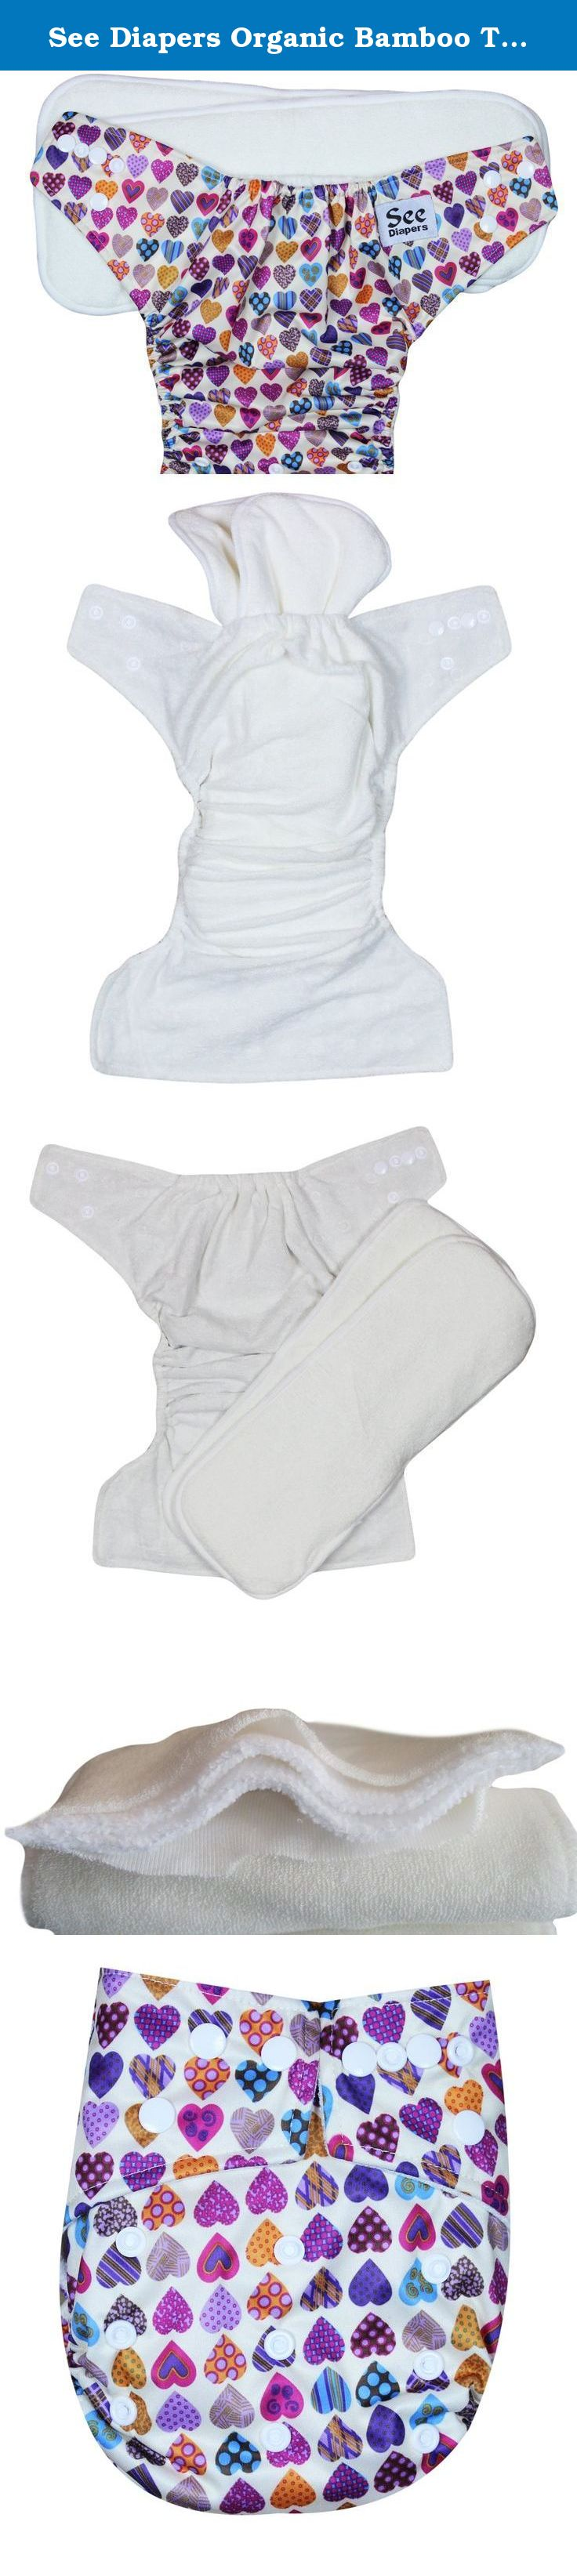 See Diapers Organic Bamboo Terry Baby Cloth Diaper - 2 Bamboo Inserts Hearts. This Organic Bamboo One Size Pocket Diaper consist of 2 parts: a waterproof outer shell + 2 large Grade A Organic bamboo inserts. The outer shell is made of high quality, durable and soft fabric. Laminated with the new and improved Thermoplastic Polyurethane (TPU), a composition specifically adapted to produce non-porous membranes exhibiting waterproof and water vapor transmissible. The result is a high…